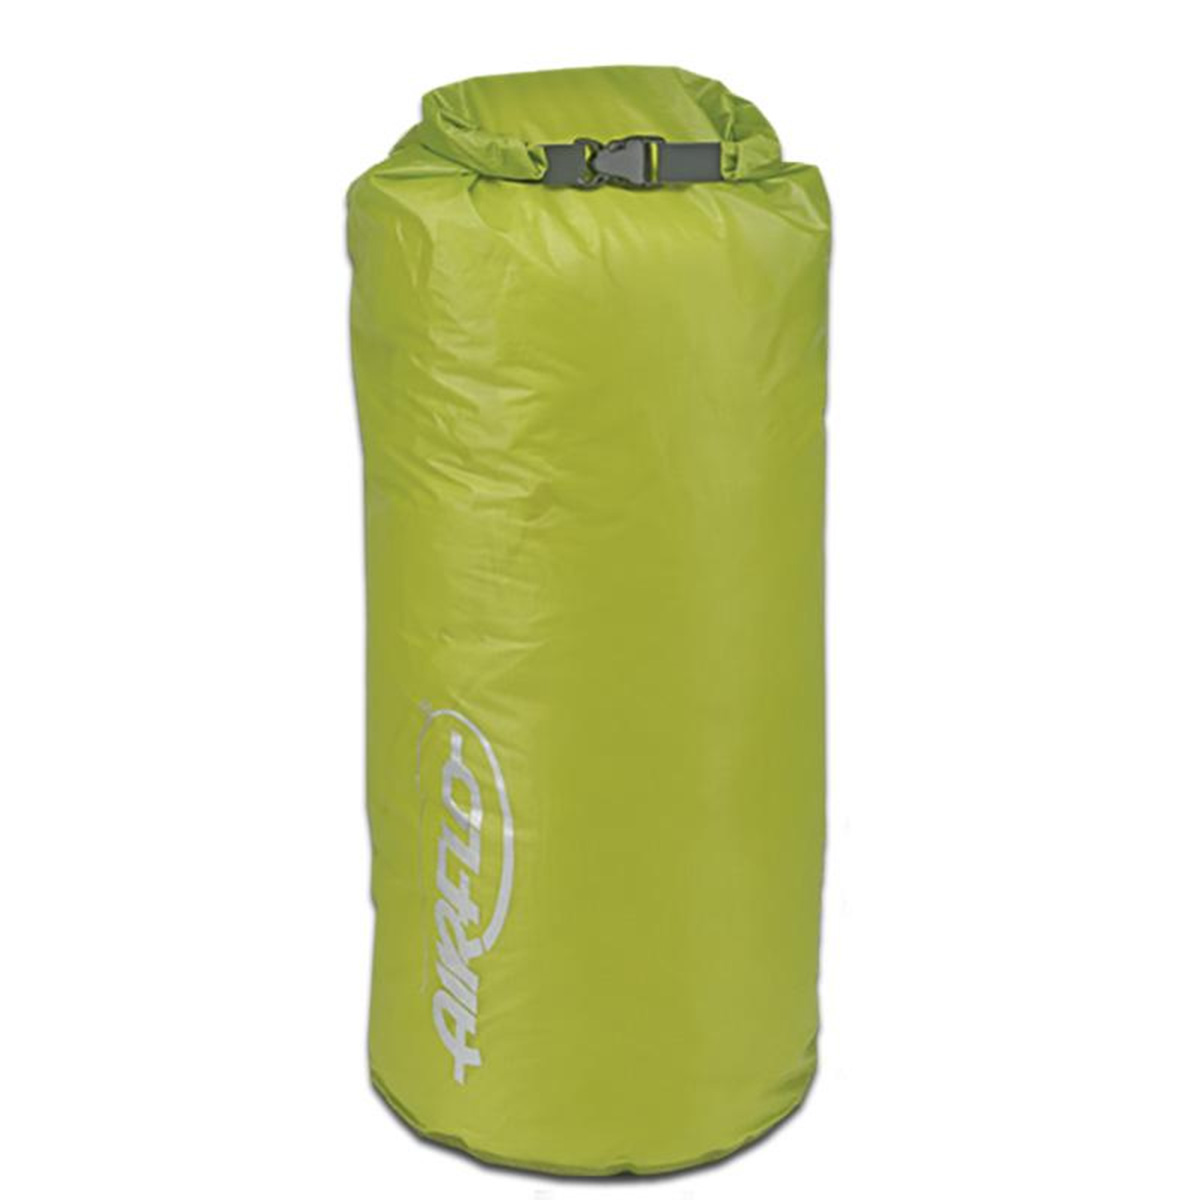 Airflo Fly Dri 20 Litre Roll Top Pack Away Dry Tube. Toddler Train Table. Round Table Placemats. Smart Desks. Flat Screen Tv Desk Mount. Powermatic Table Saws. French Country Table Lamps. Exercises To Do While Sitting At A Desk. Harley Davidson Desk Accessories